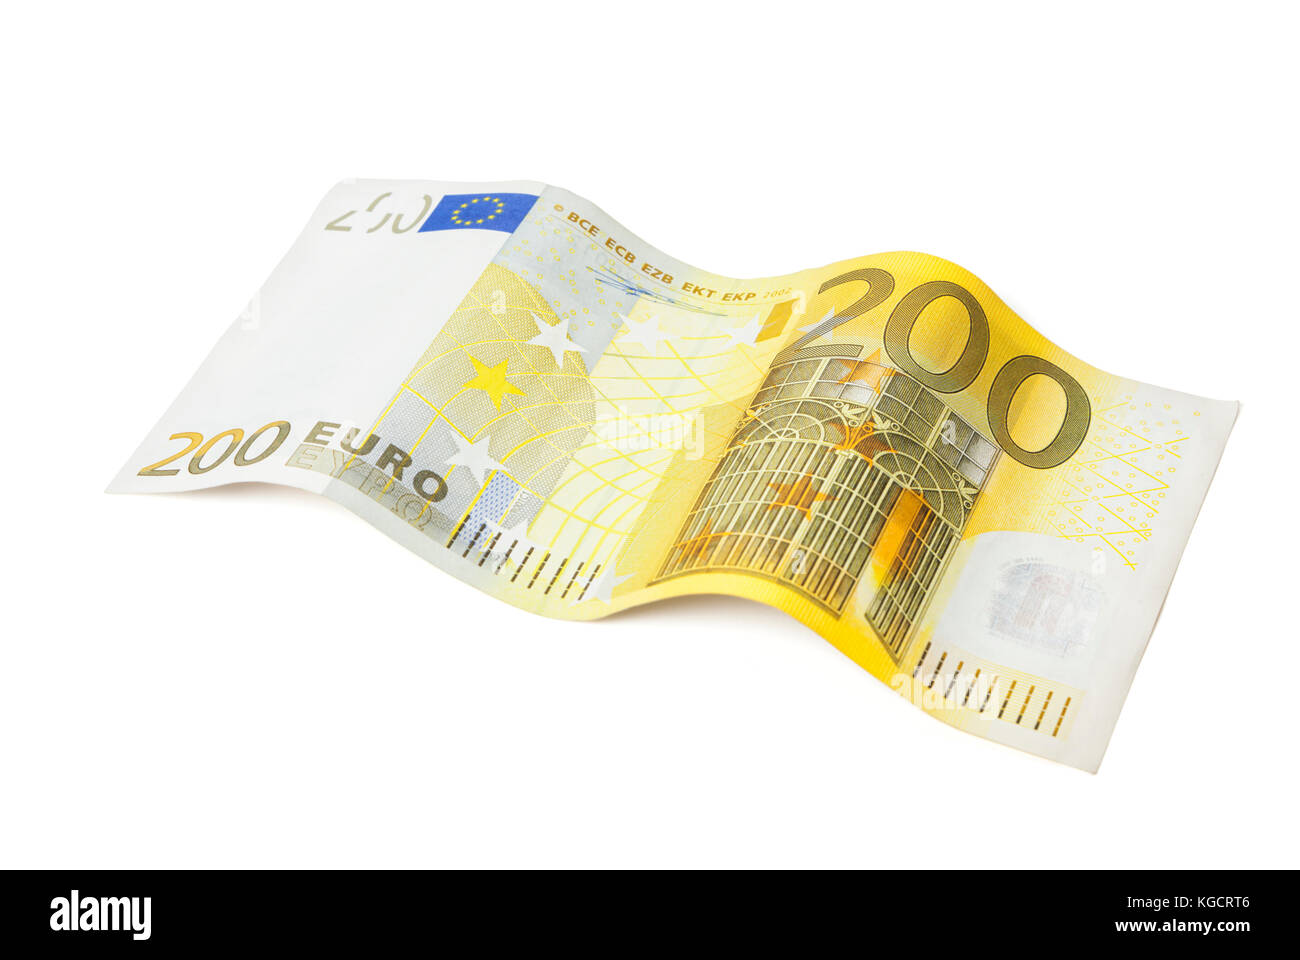 Two-hundred Euros bill arranged in wave shape isolated on white background - Stock Image